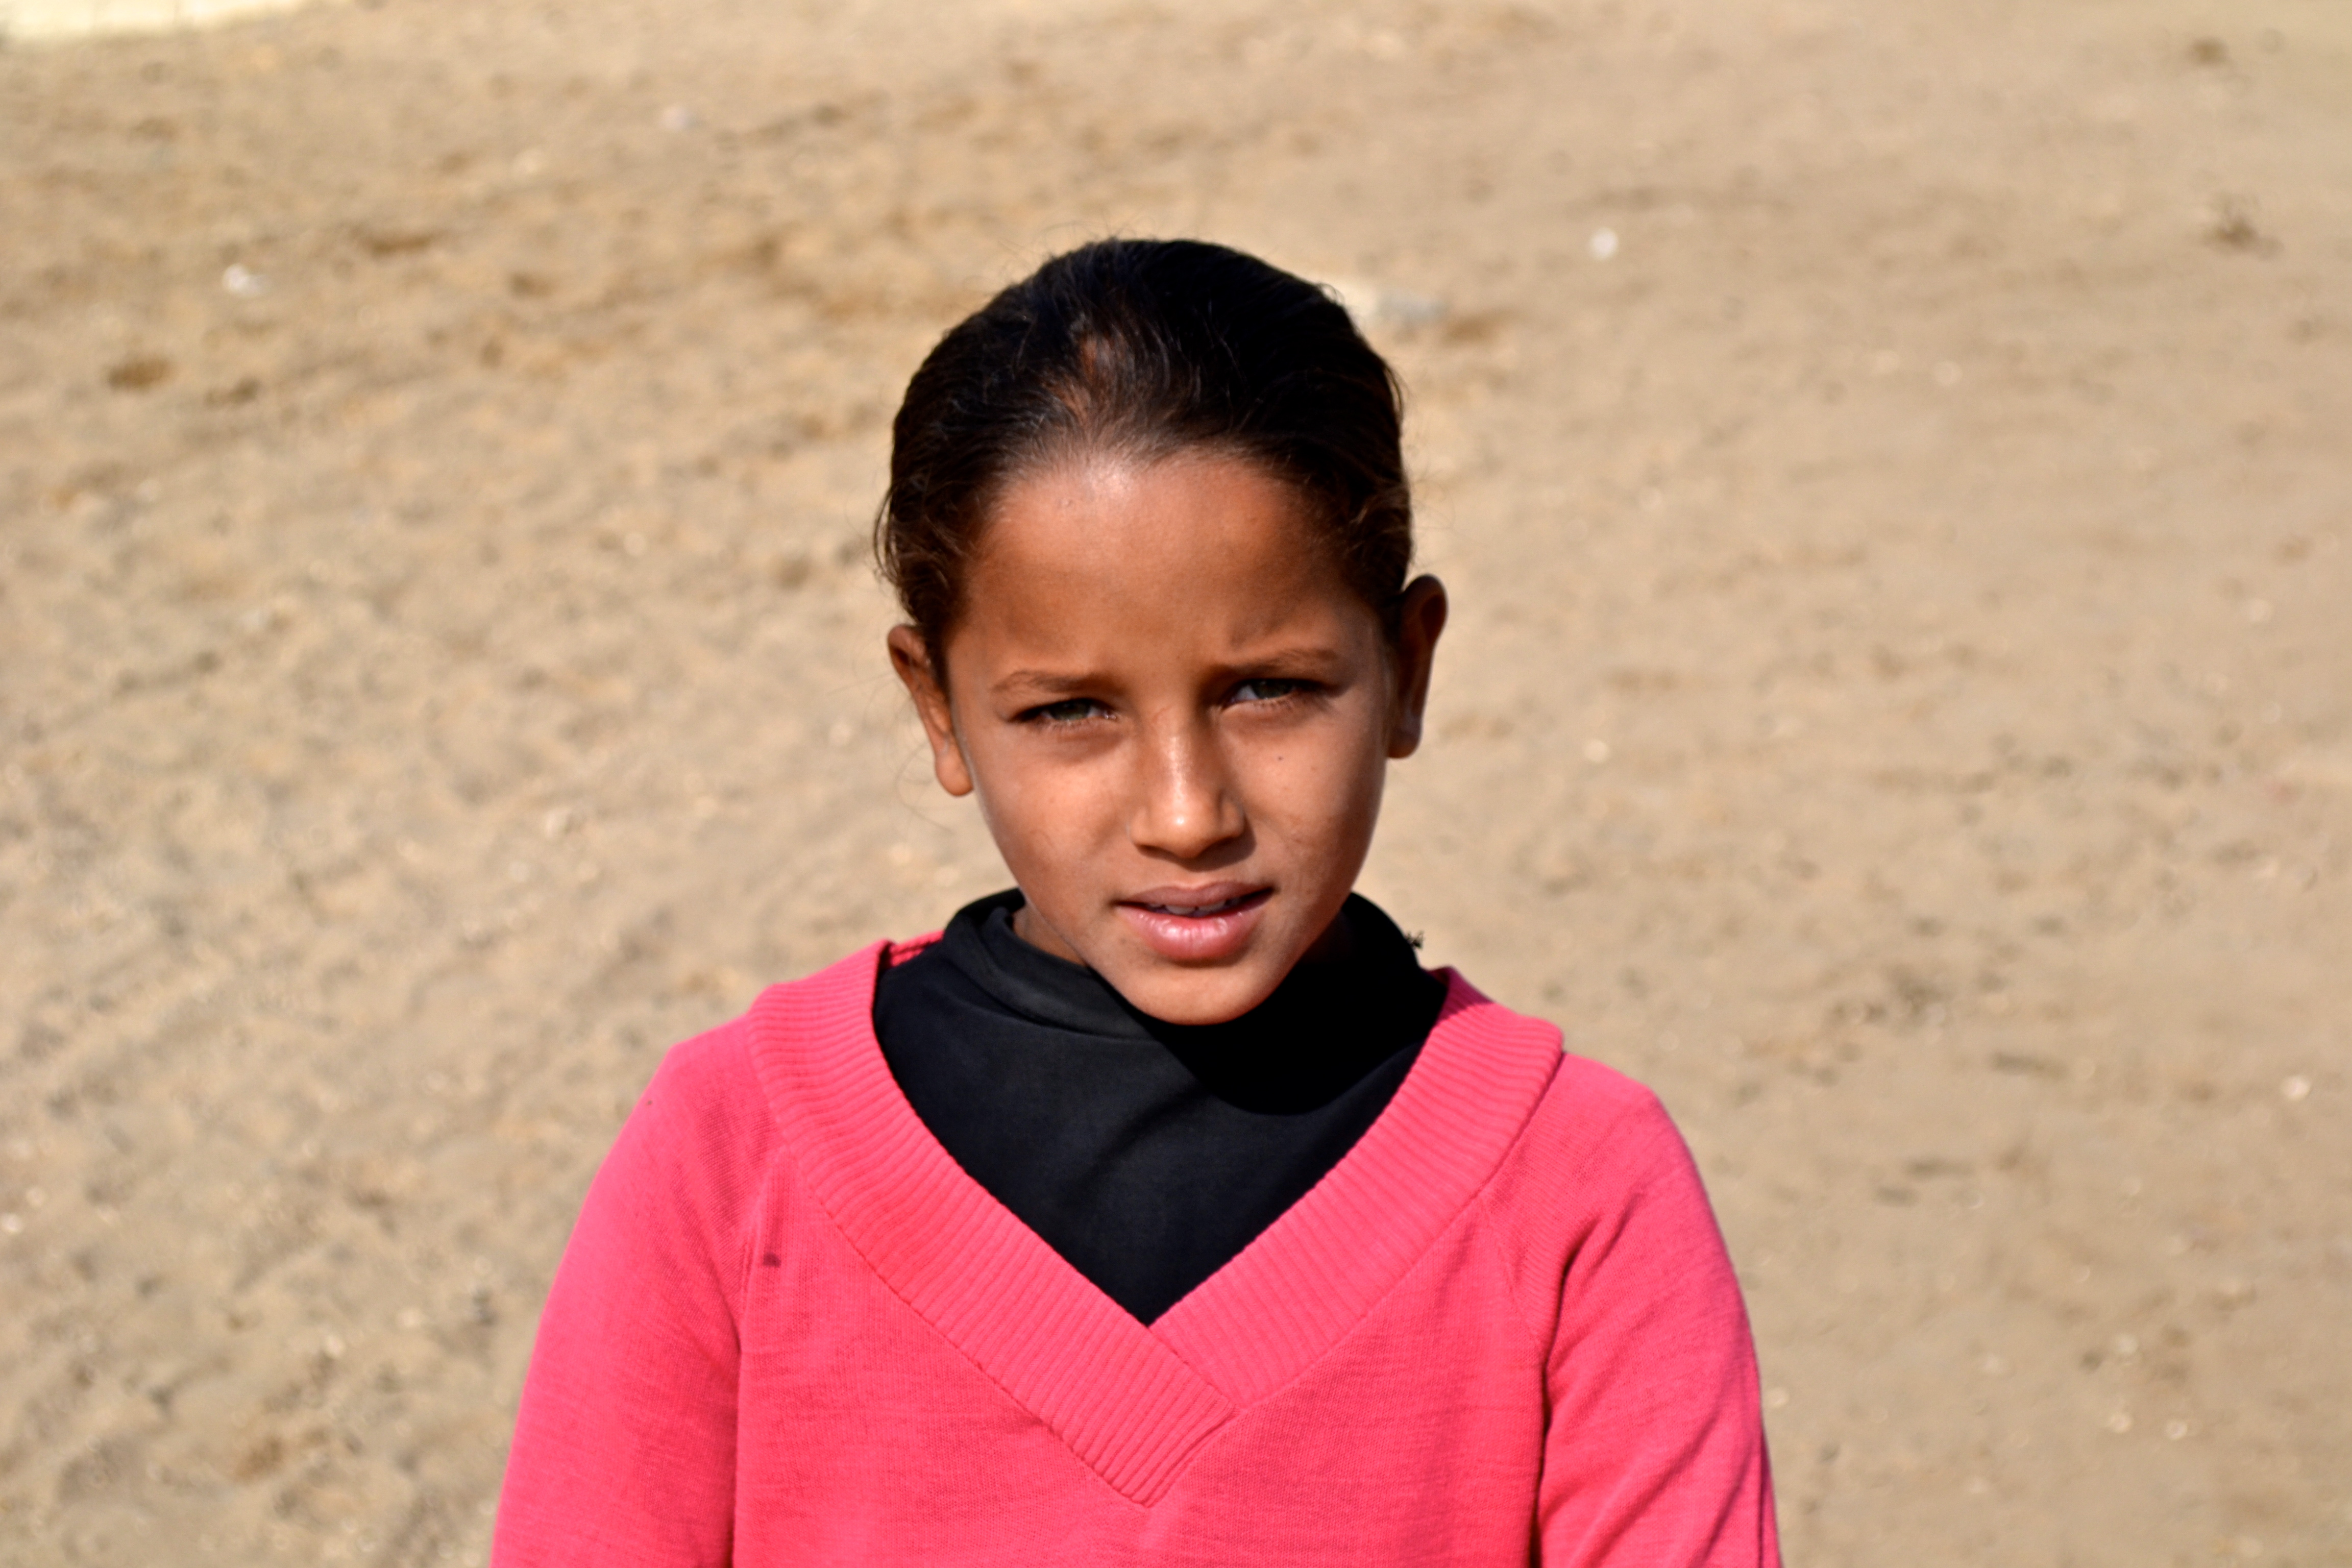 A girl selling souvenirs at the Pyramids to support her family.